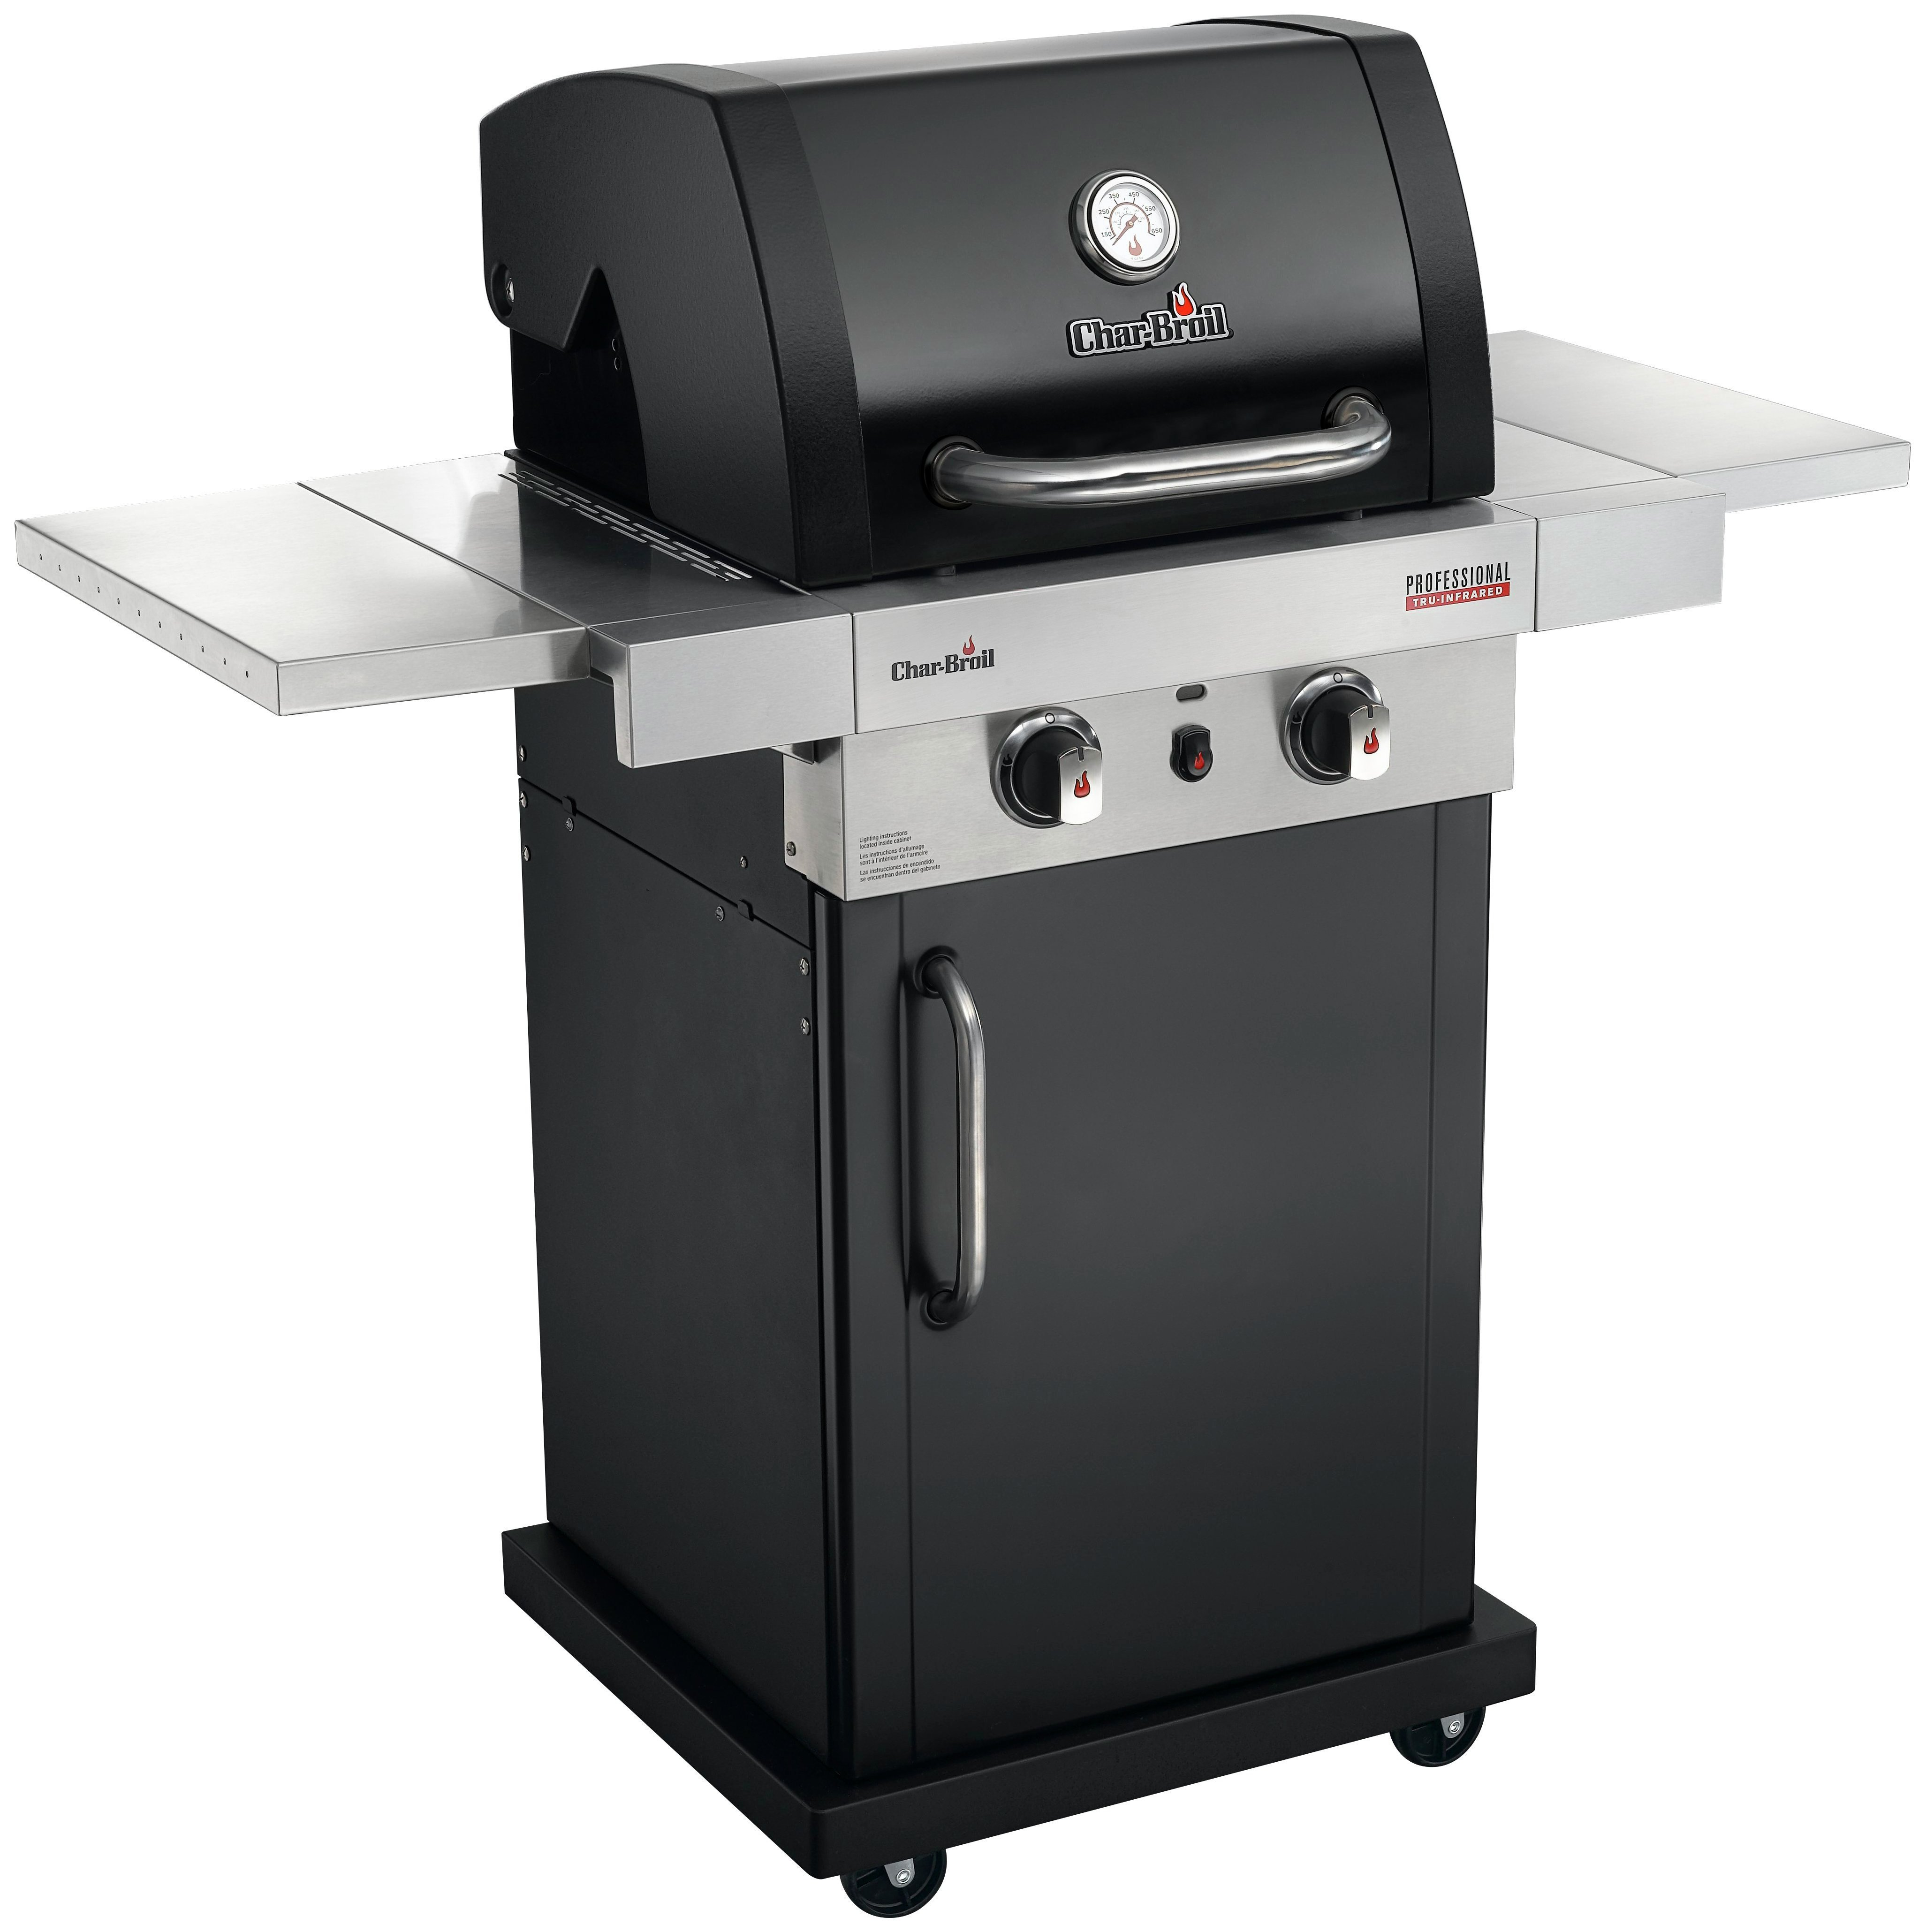 Image of Char-Broil PRO 2200 B - 2 Burner Gas BBQ Stainless Steel